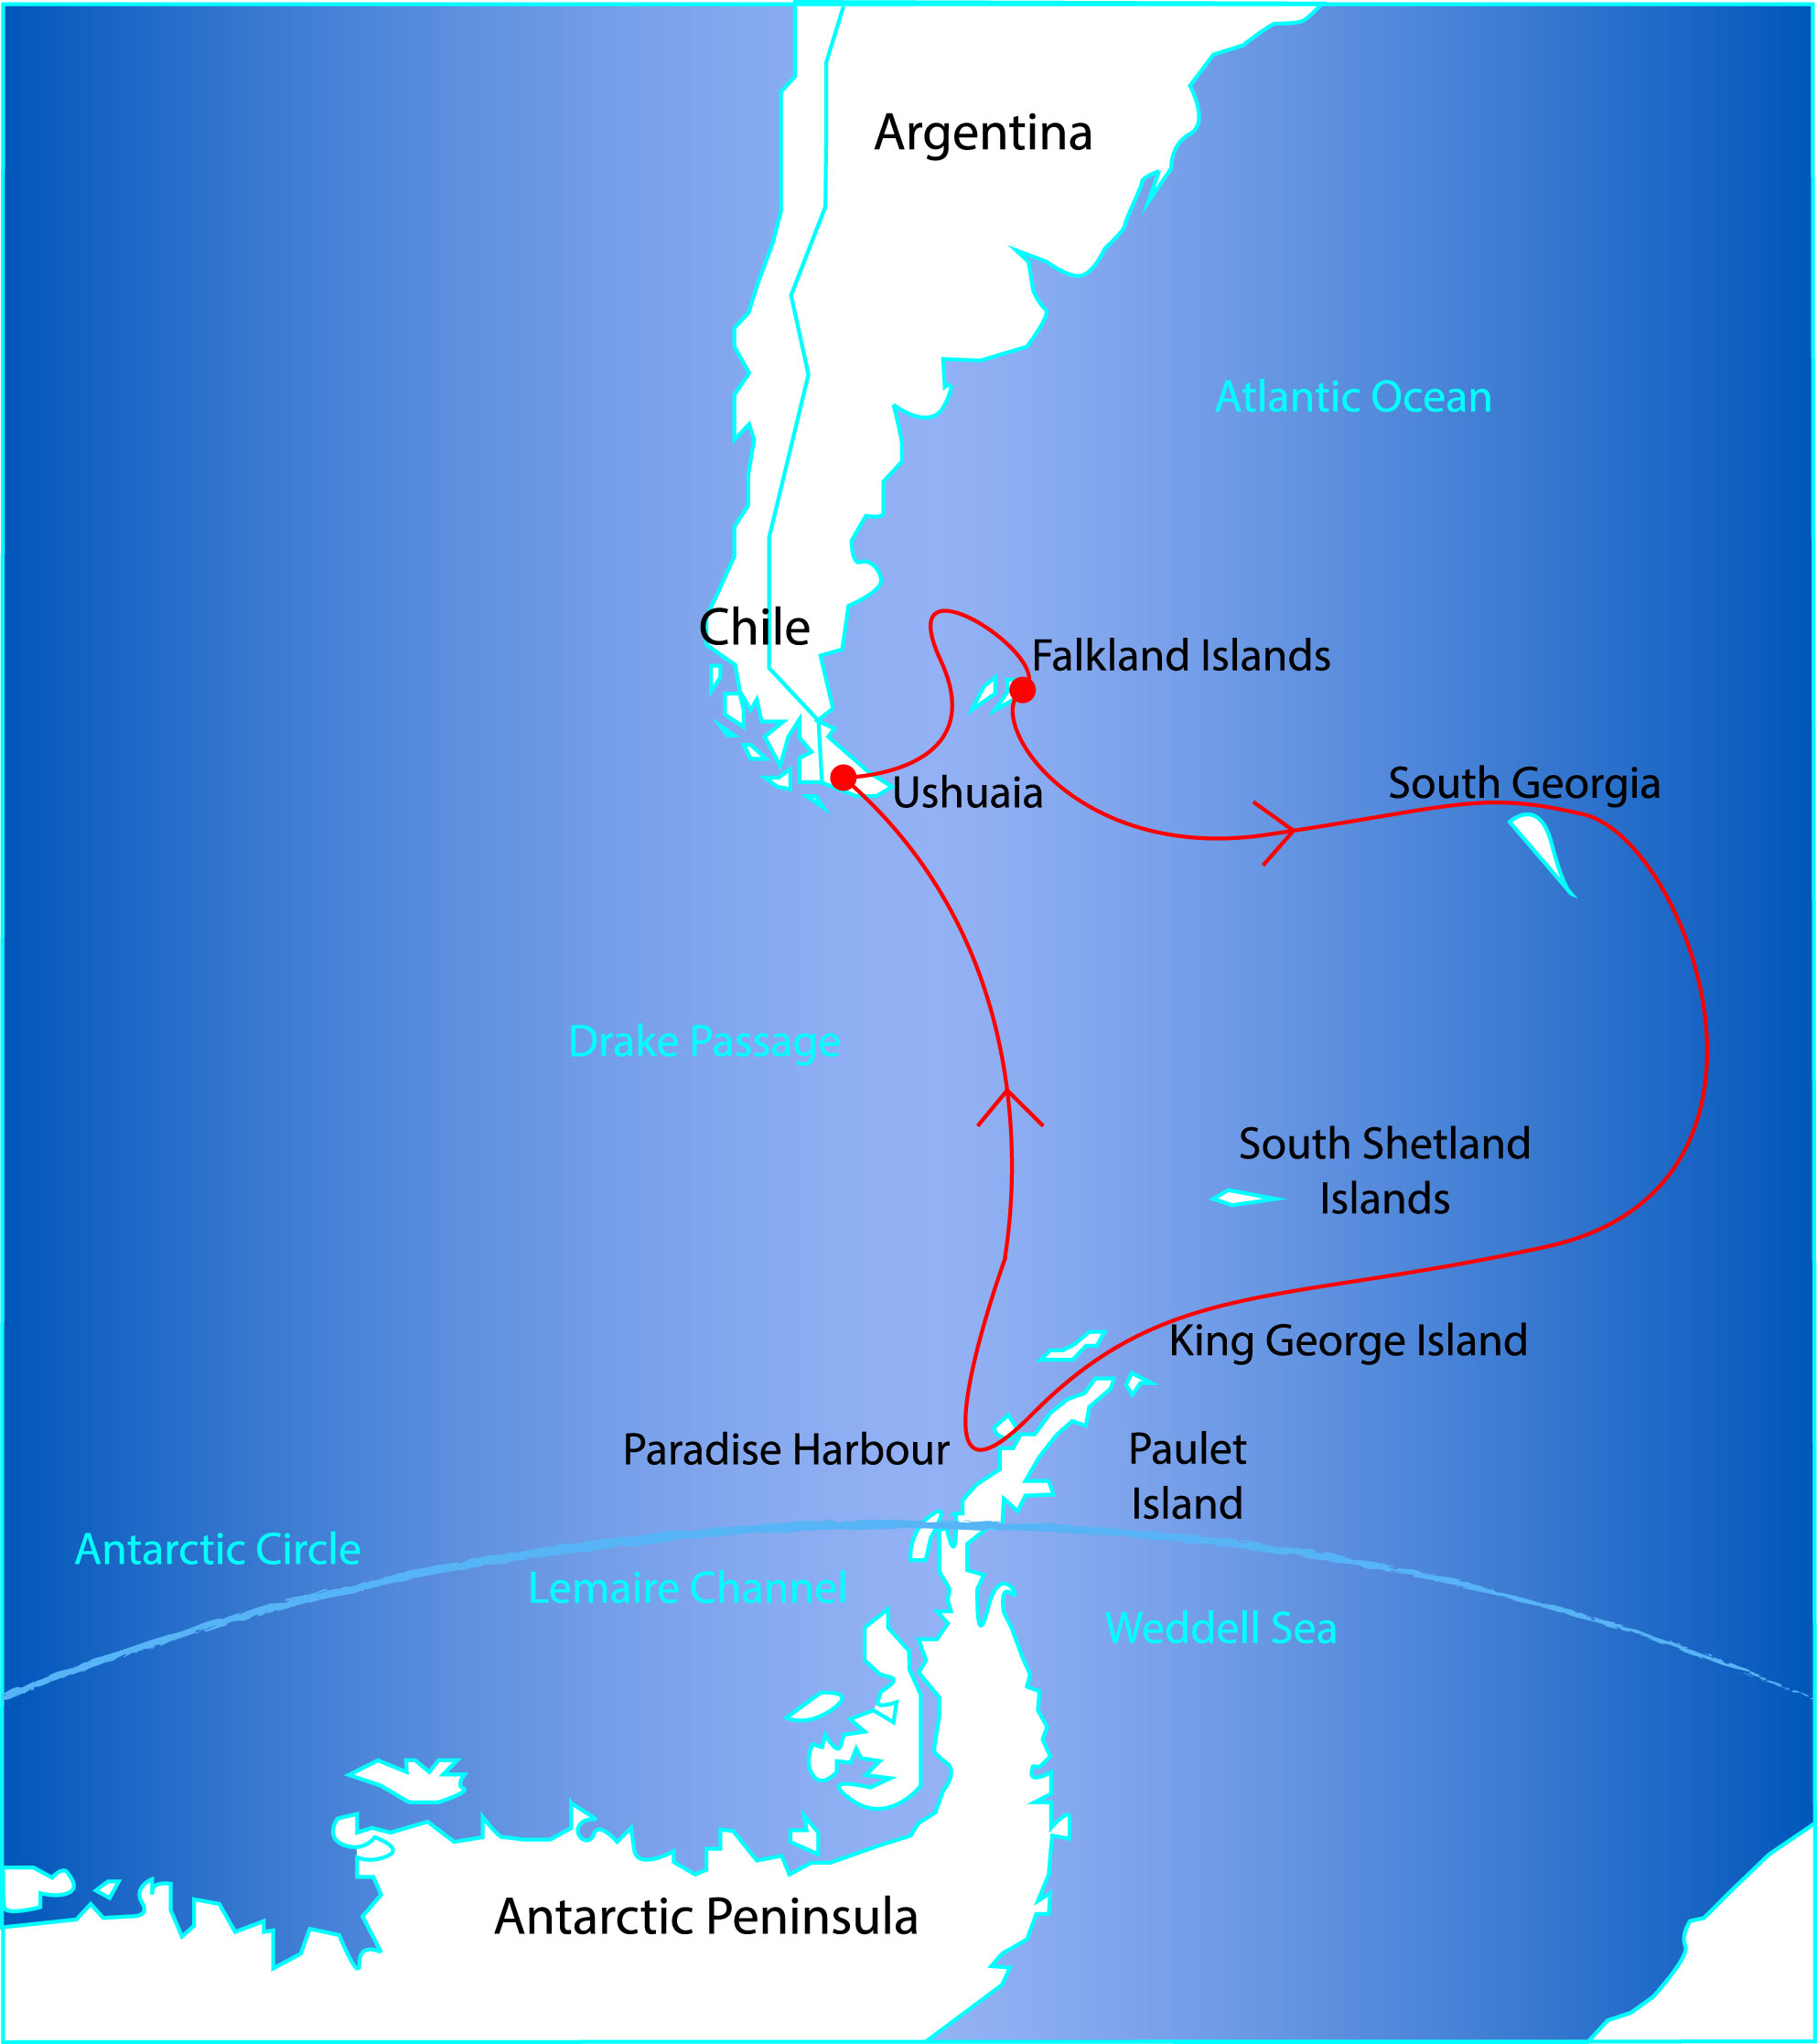 Route Map for the Antarctica Via Falklands and South Georgia Cruise